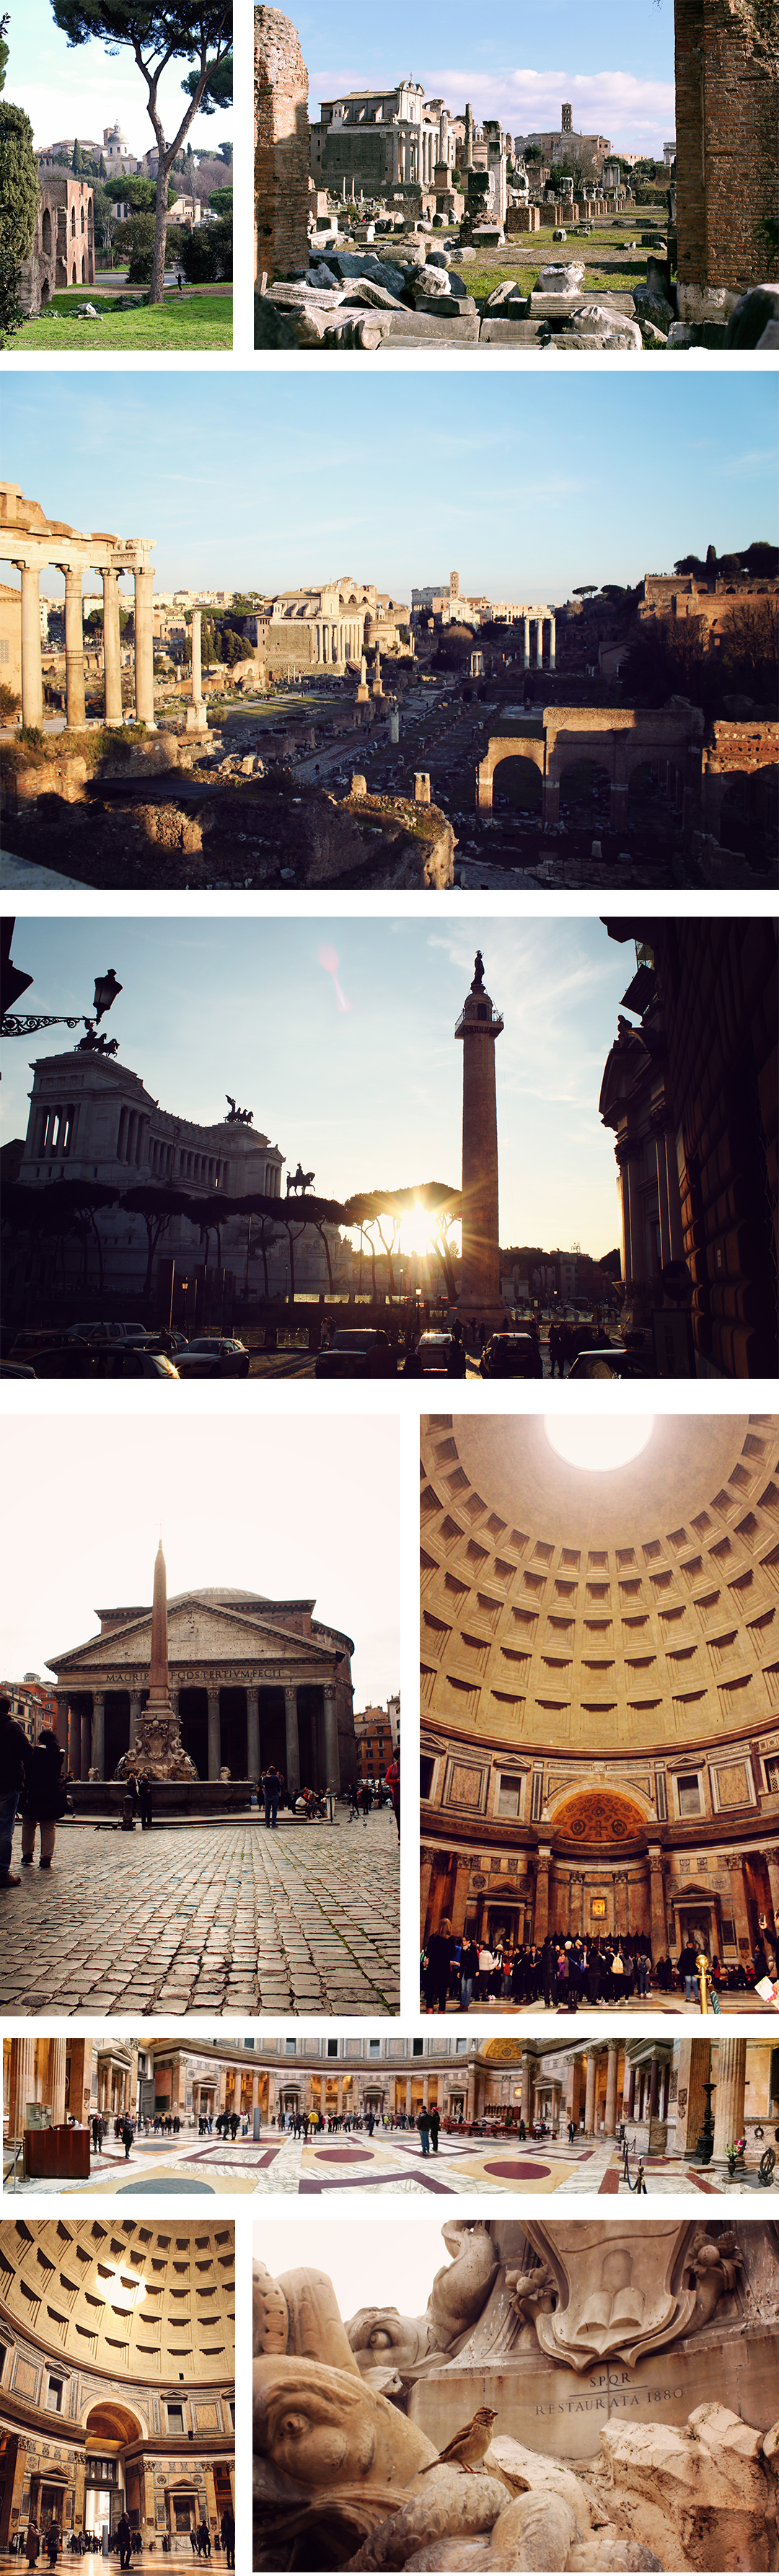 Palatine Hill, The wedding cake and the Pantheon in Rome, Italy